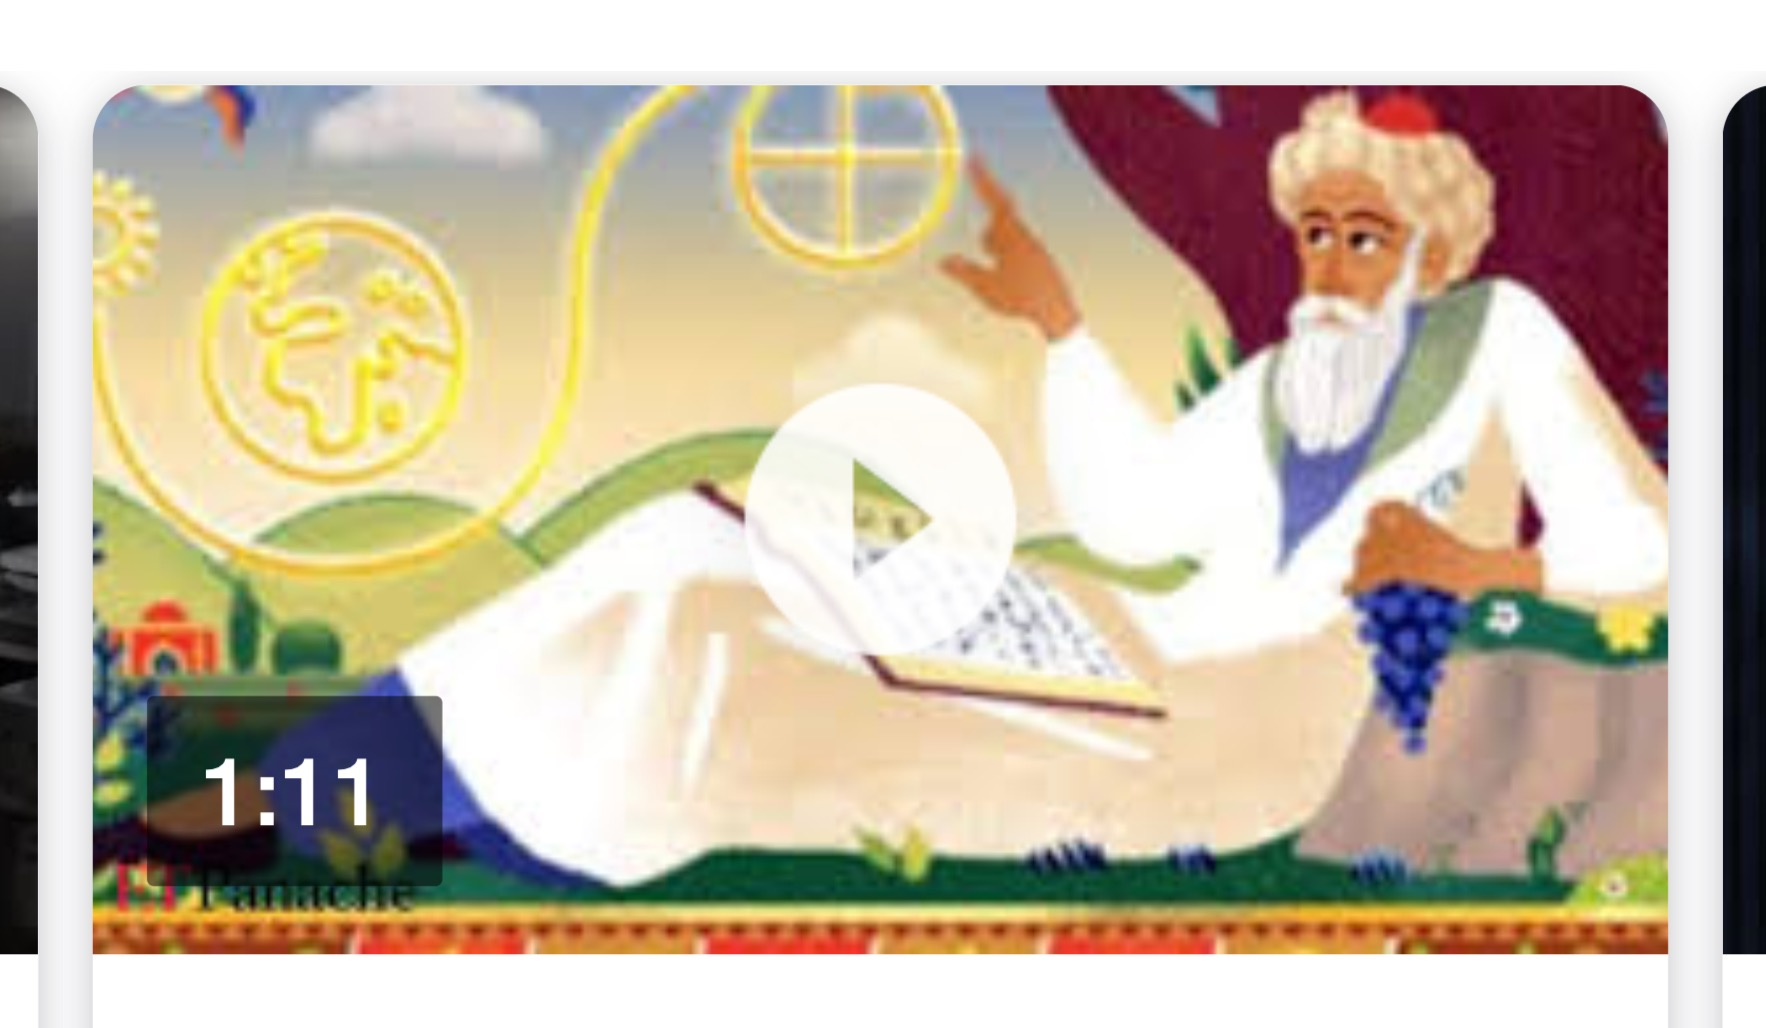 Screen shot of google doodle acknowledging his birthday, and co incidentally I'm reading about him at the same time. Well, only a month later!!